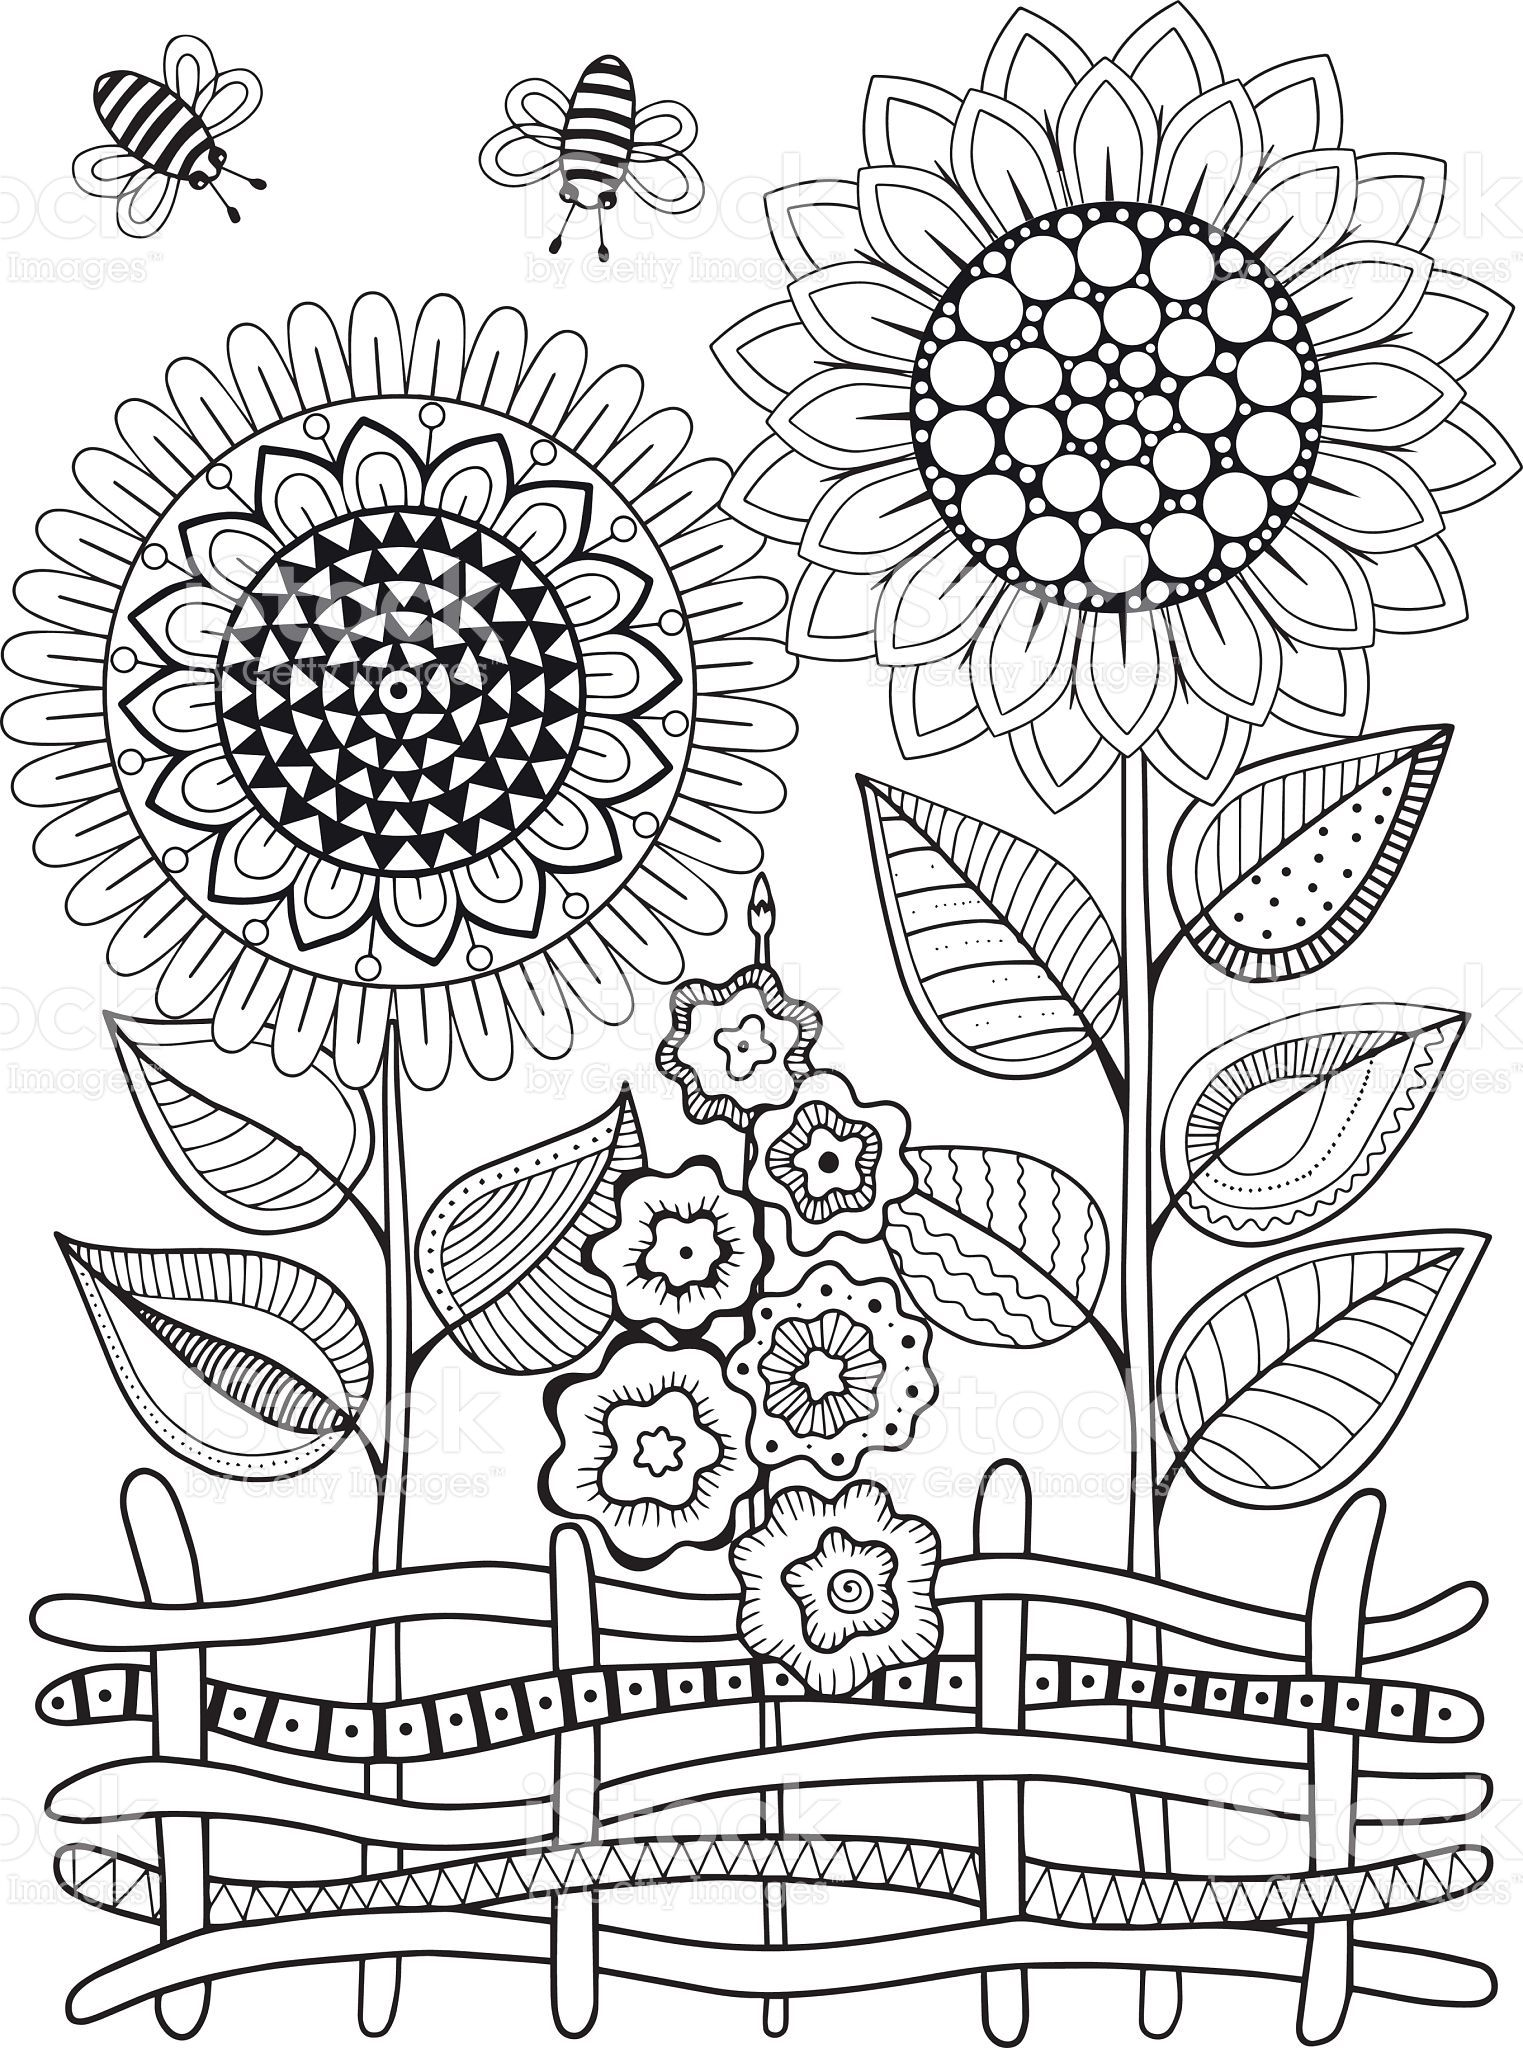 Vividly Intricate Sunflower Adult Coloring Page | Mandala coloring ... | 2048x1523